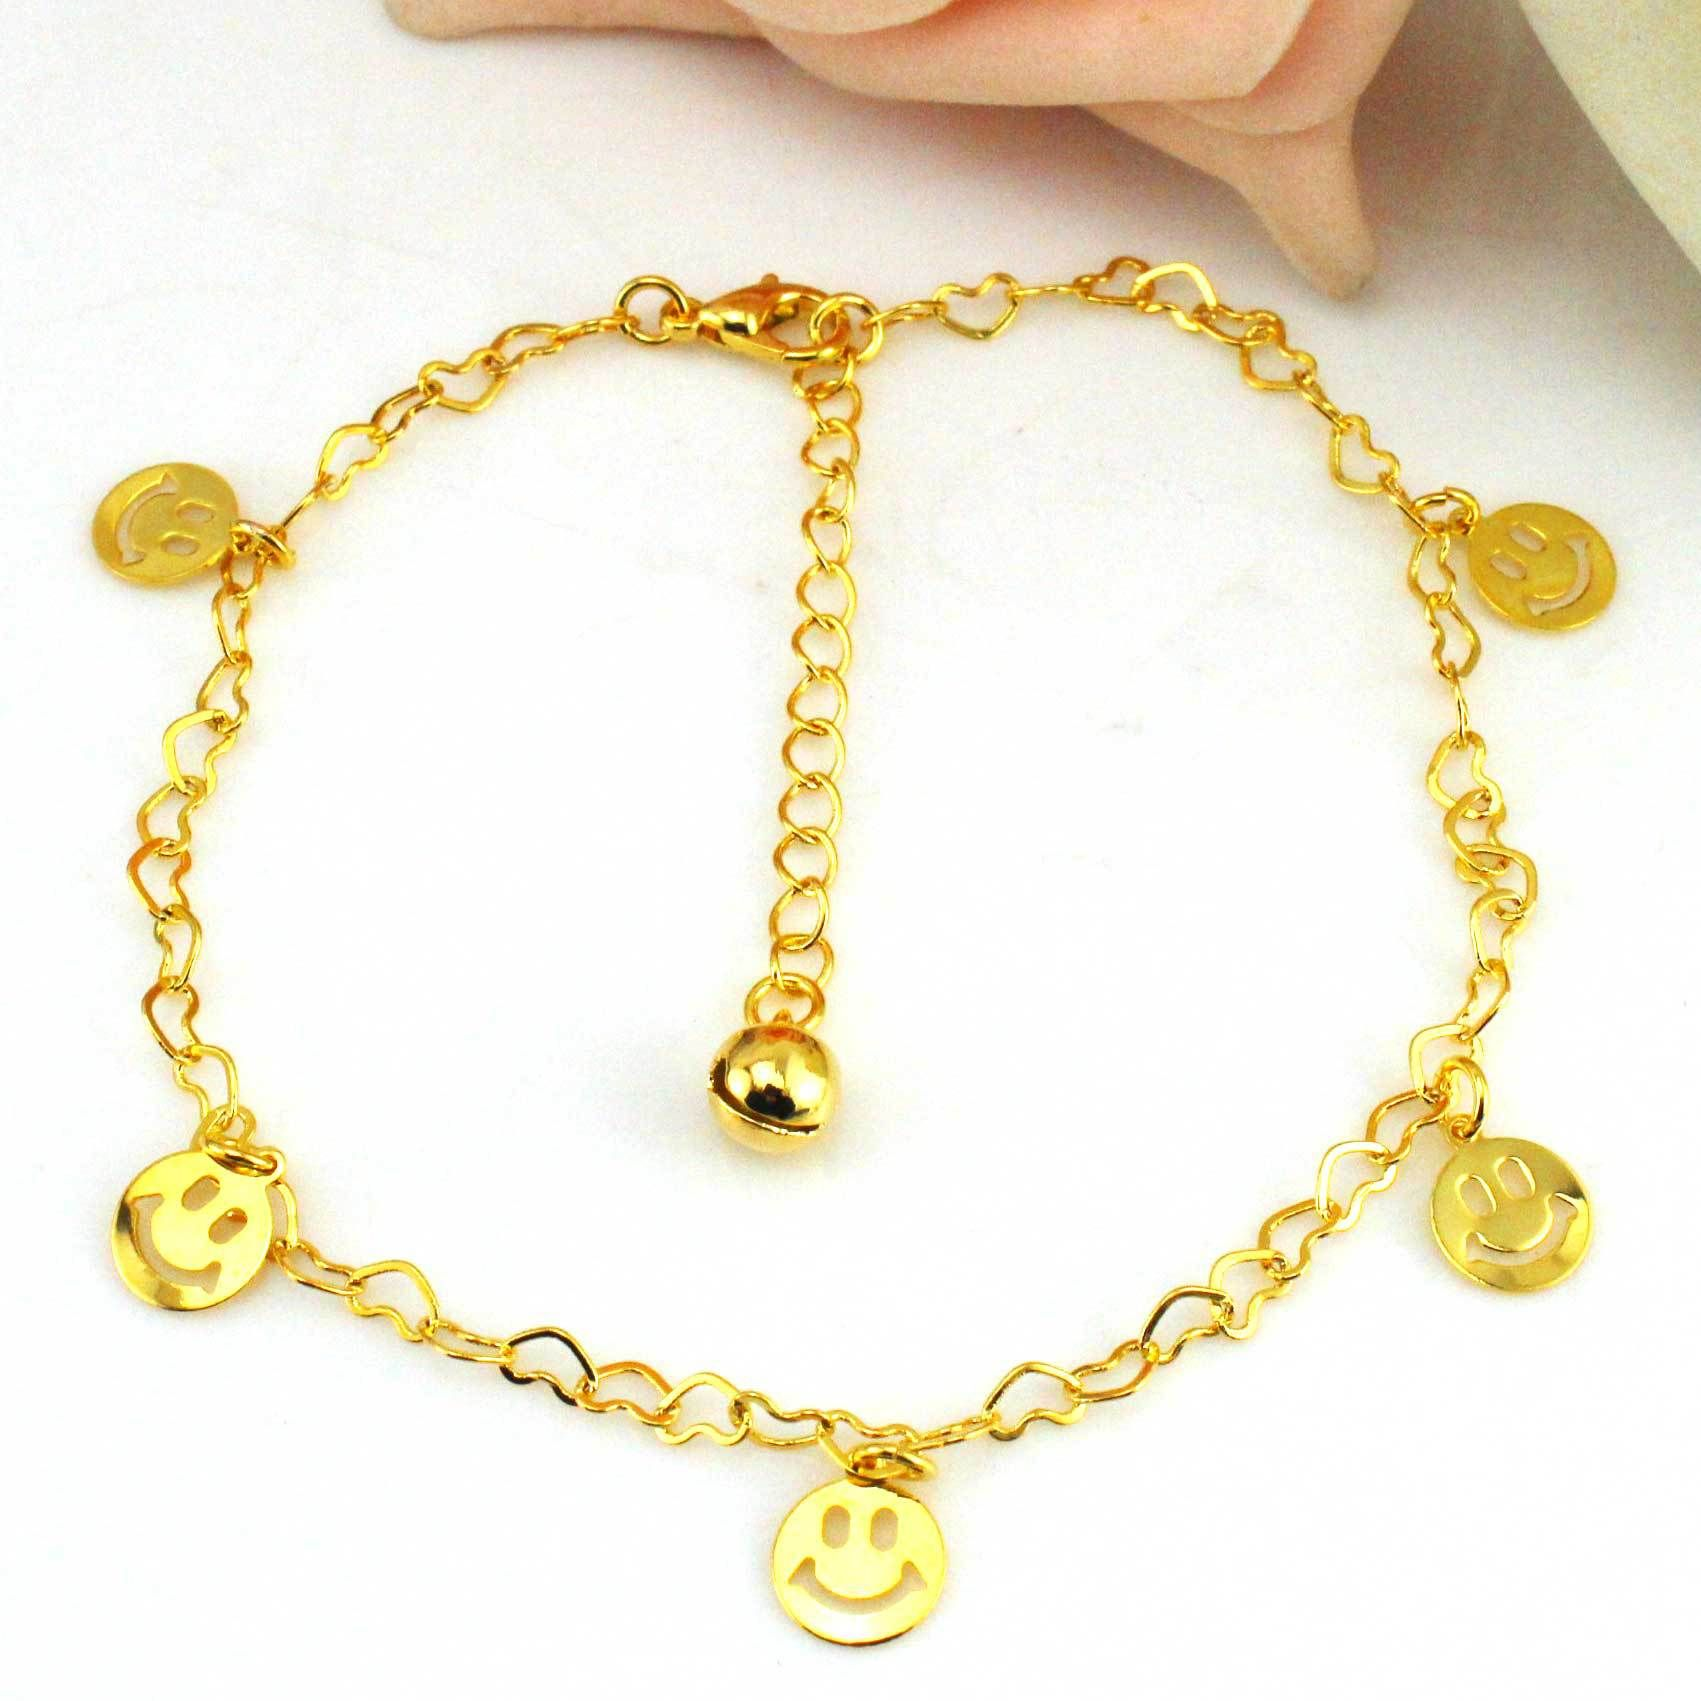 jewelry bell plated steel bracelet lucky amazon anklet dp gold casoty small anklets ankle drawing com money titanium